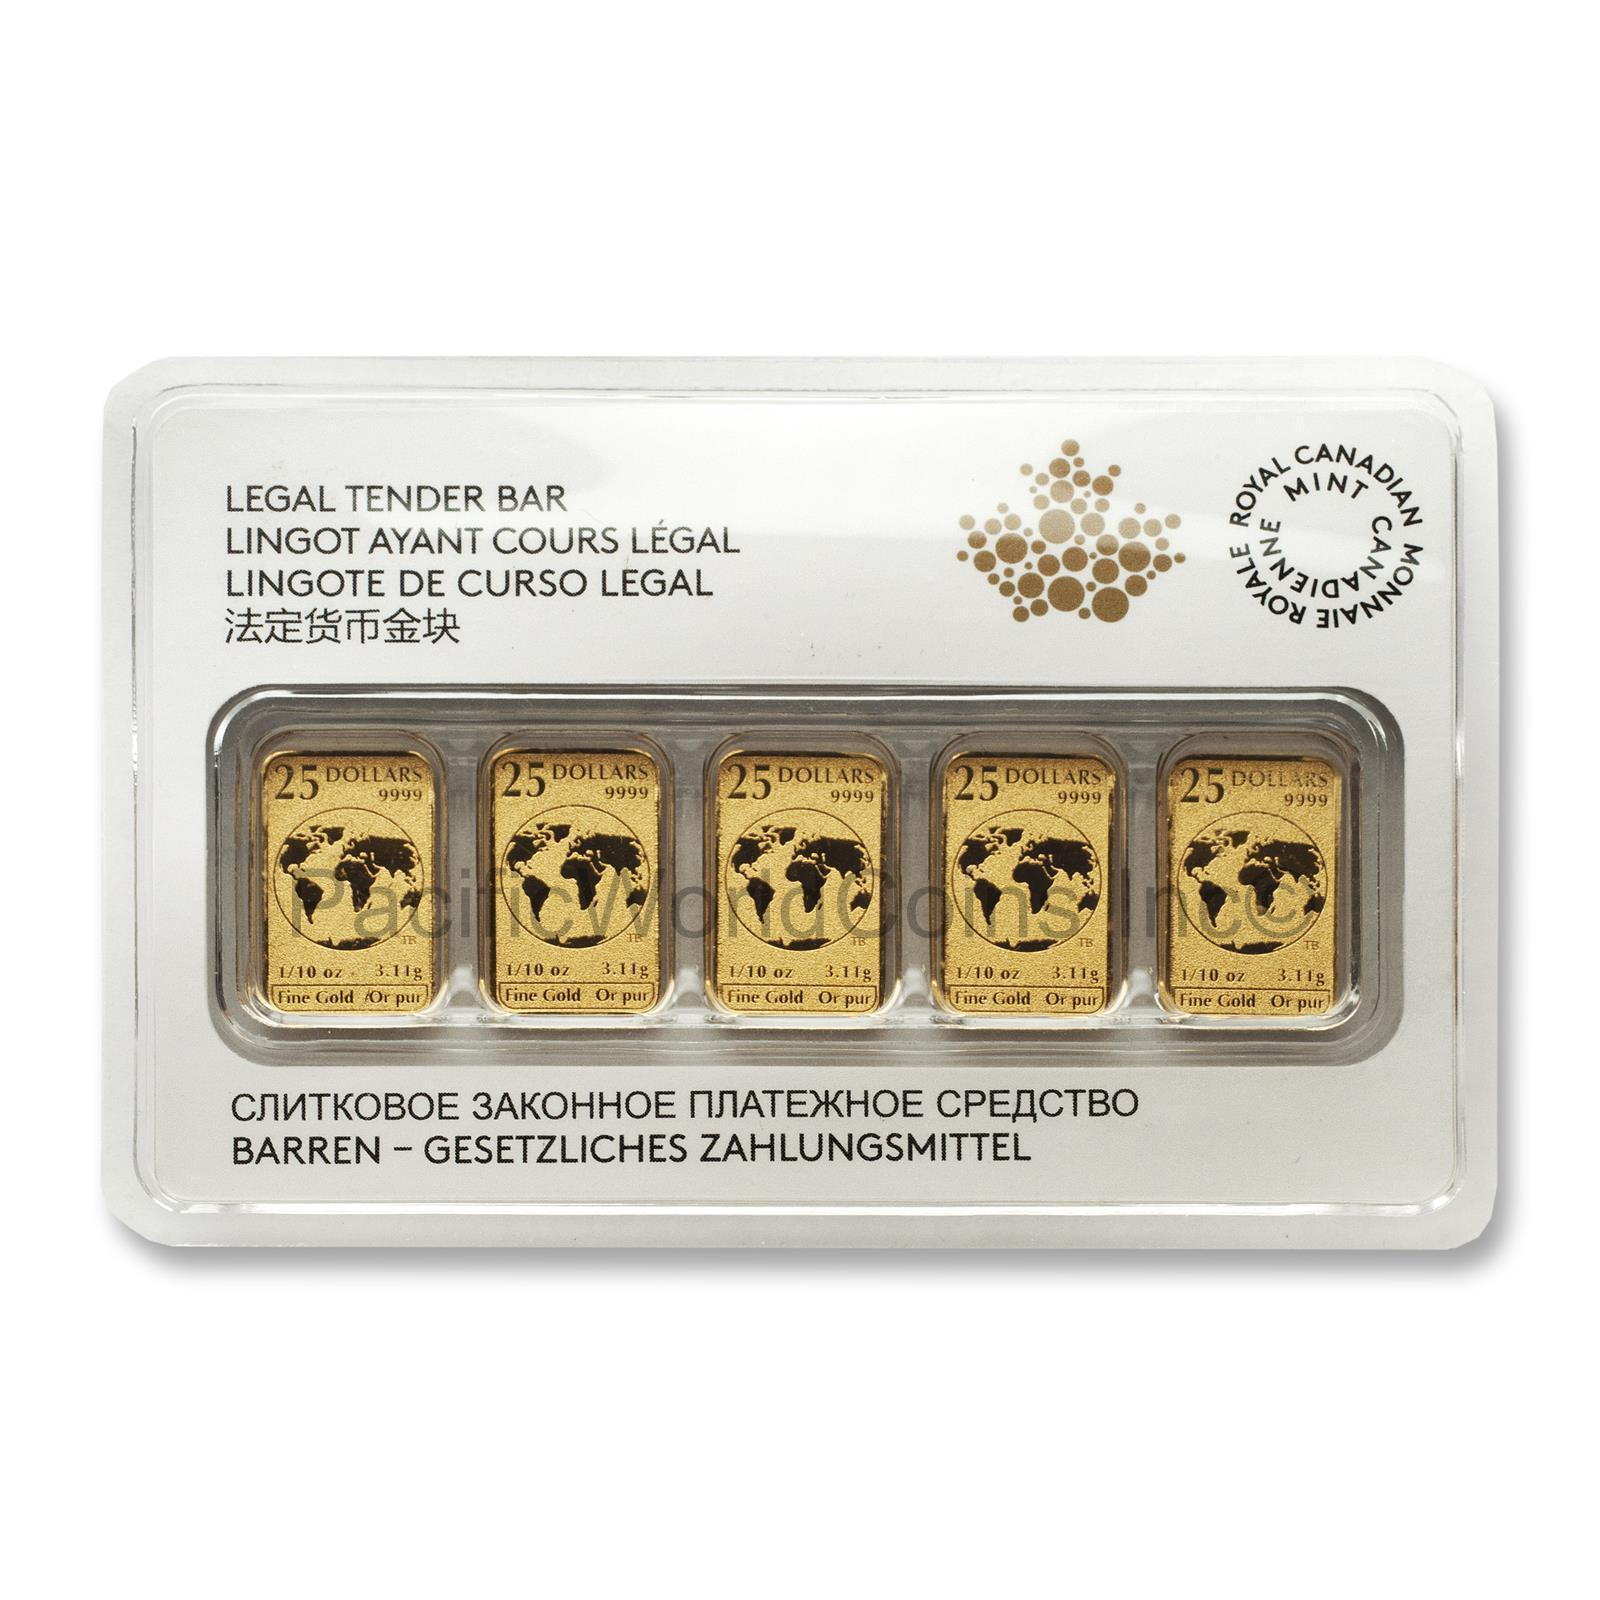 Canadian 2016 Legal Tender 1/10-oz Gold Bars (Pkg Contains 5 Bars)